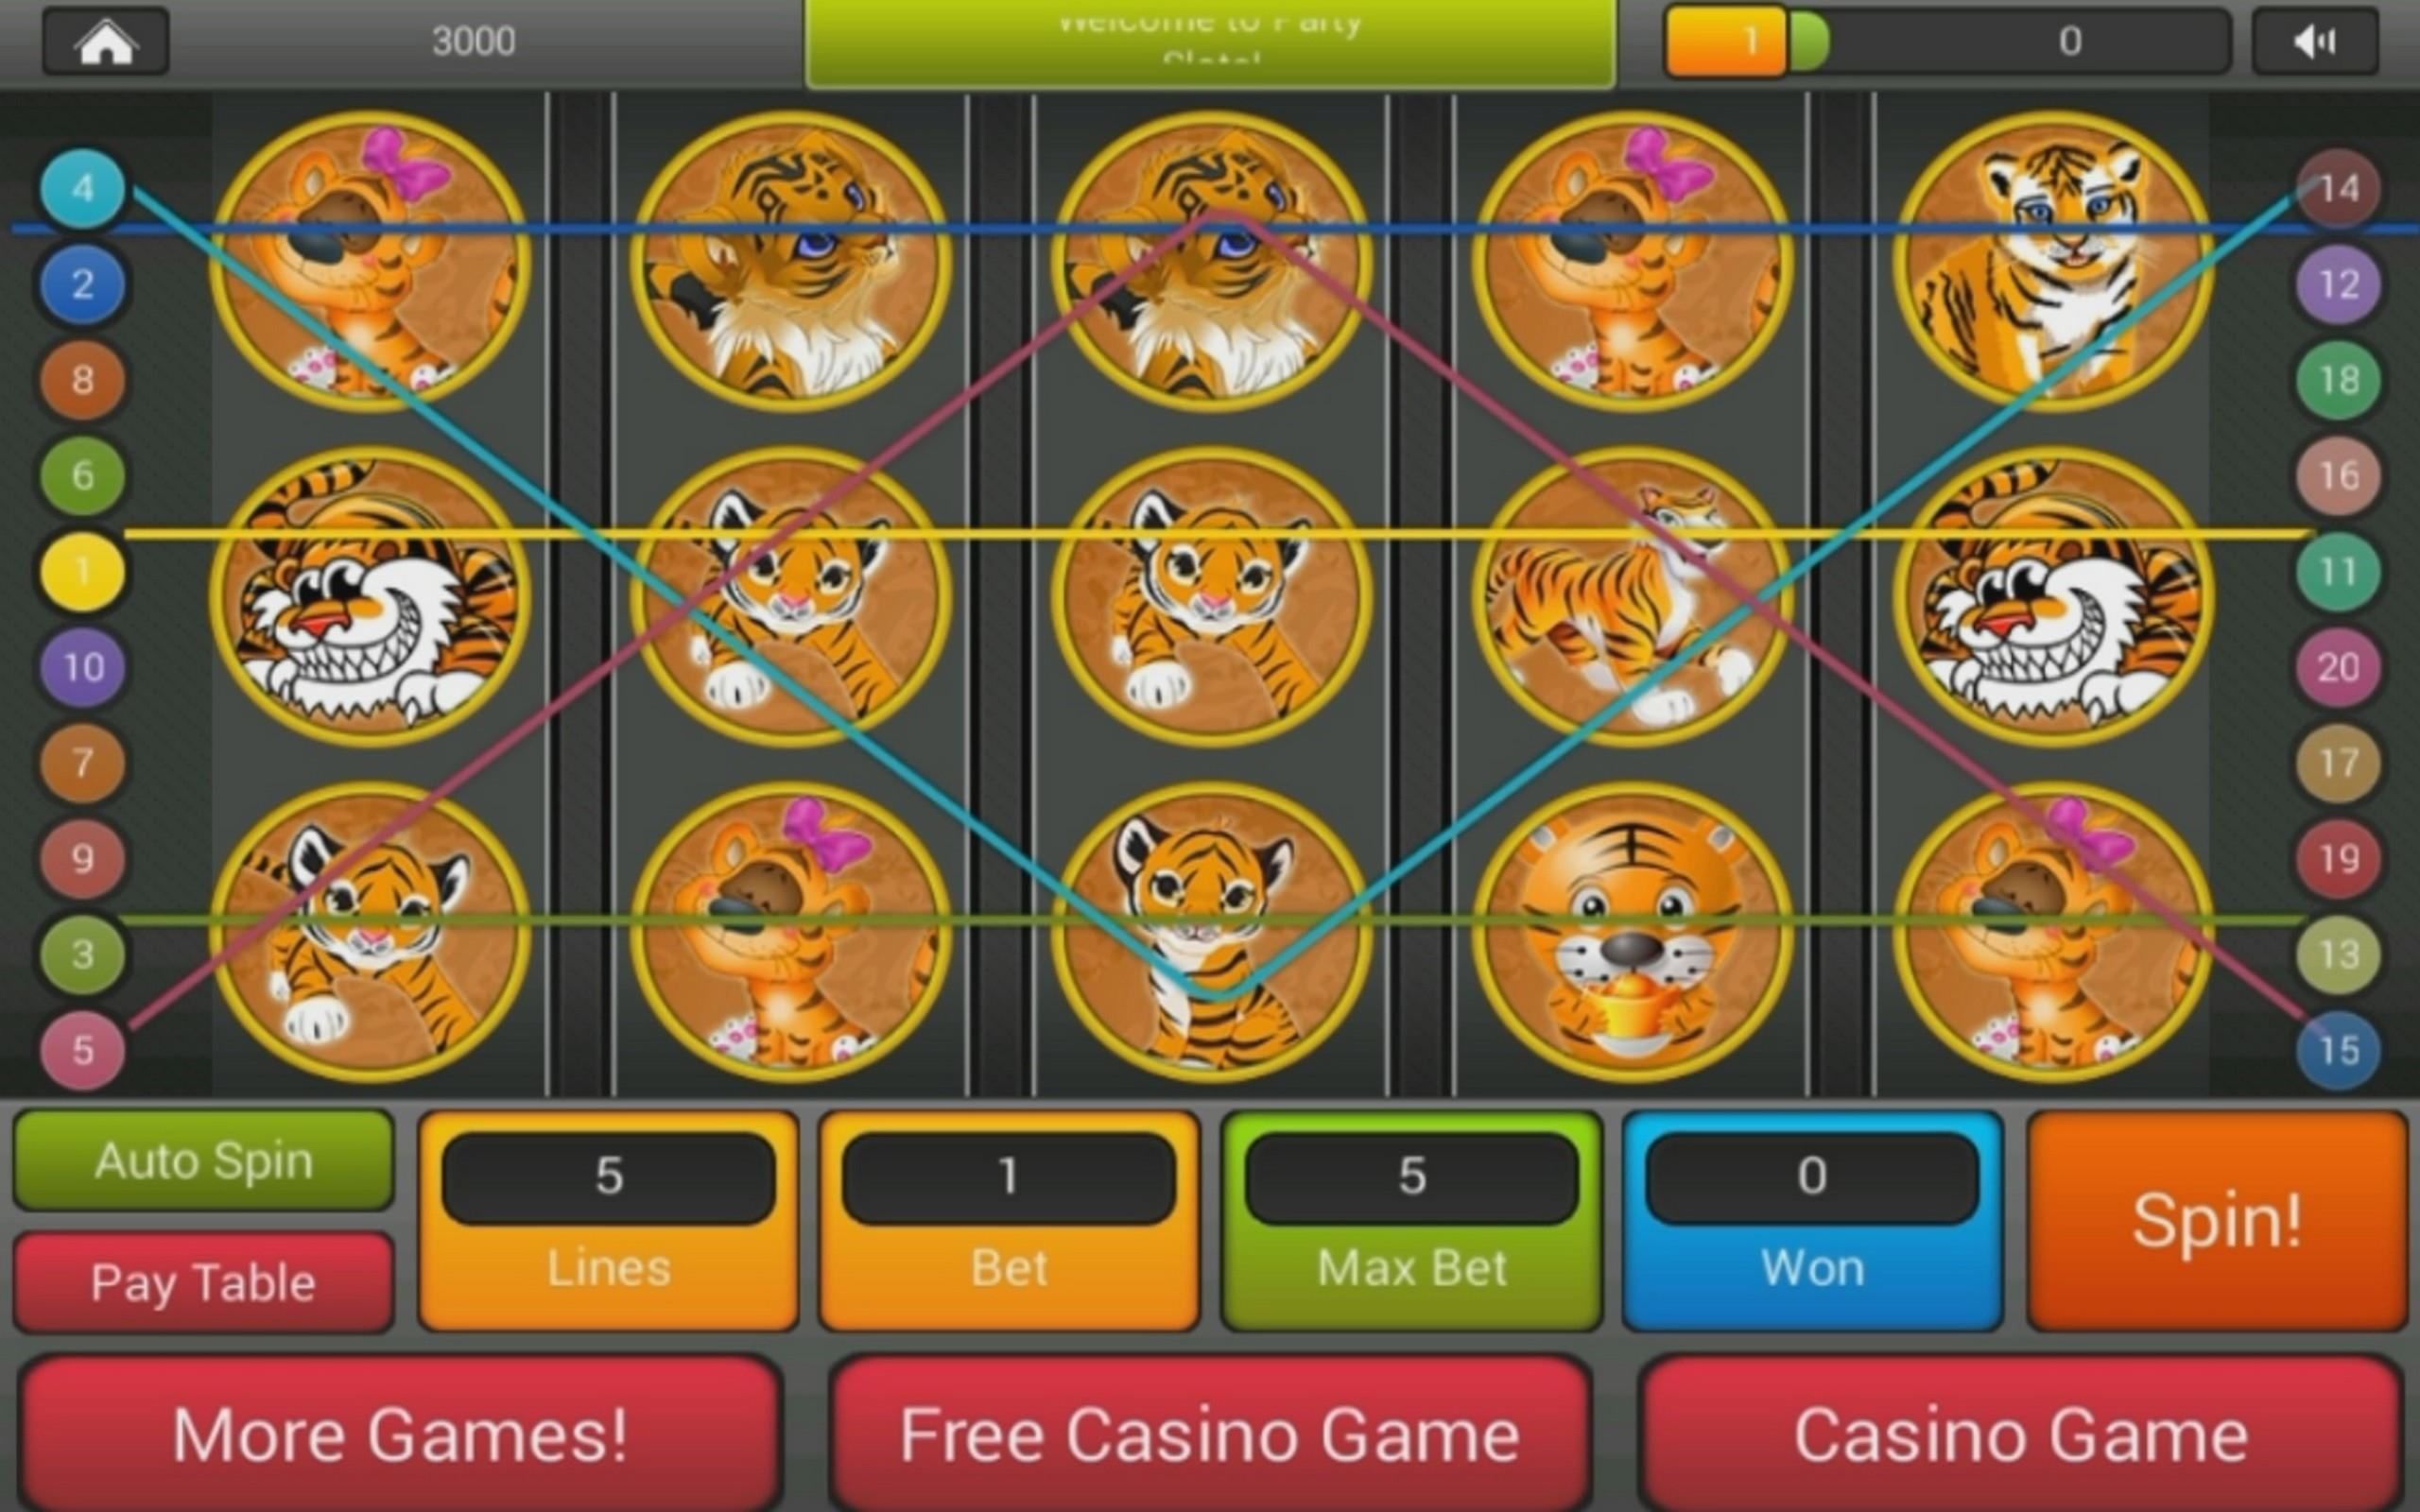 115 Free Spins right now at Dunder